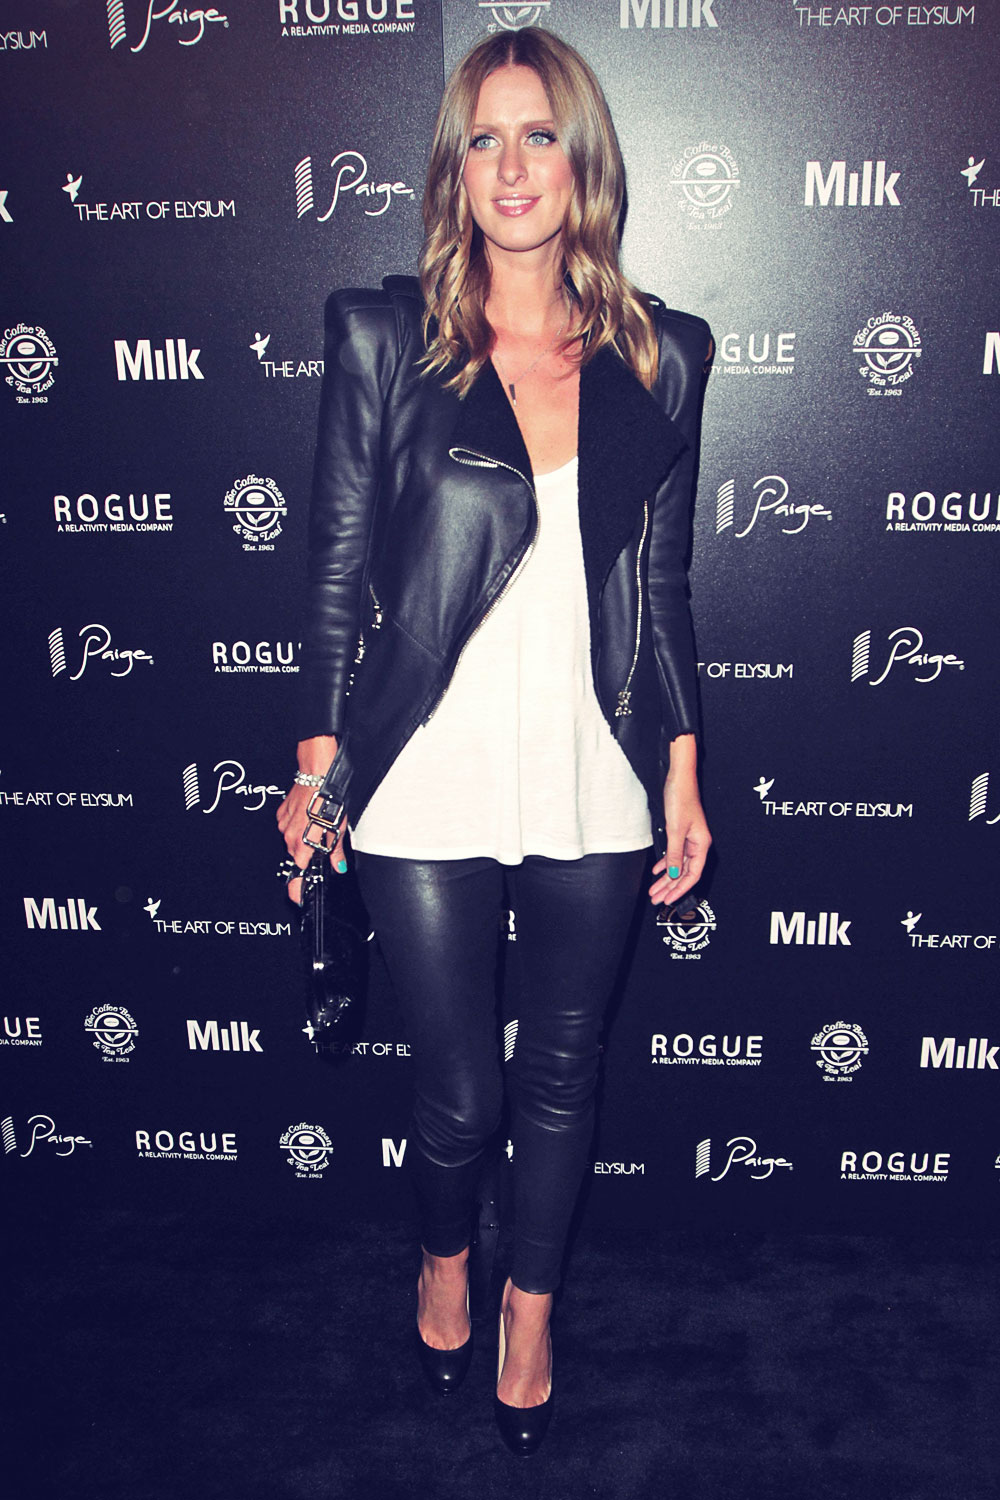 Nicky Hilton attends The Art of Elysium Event